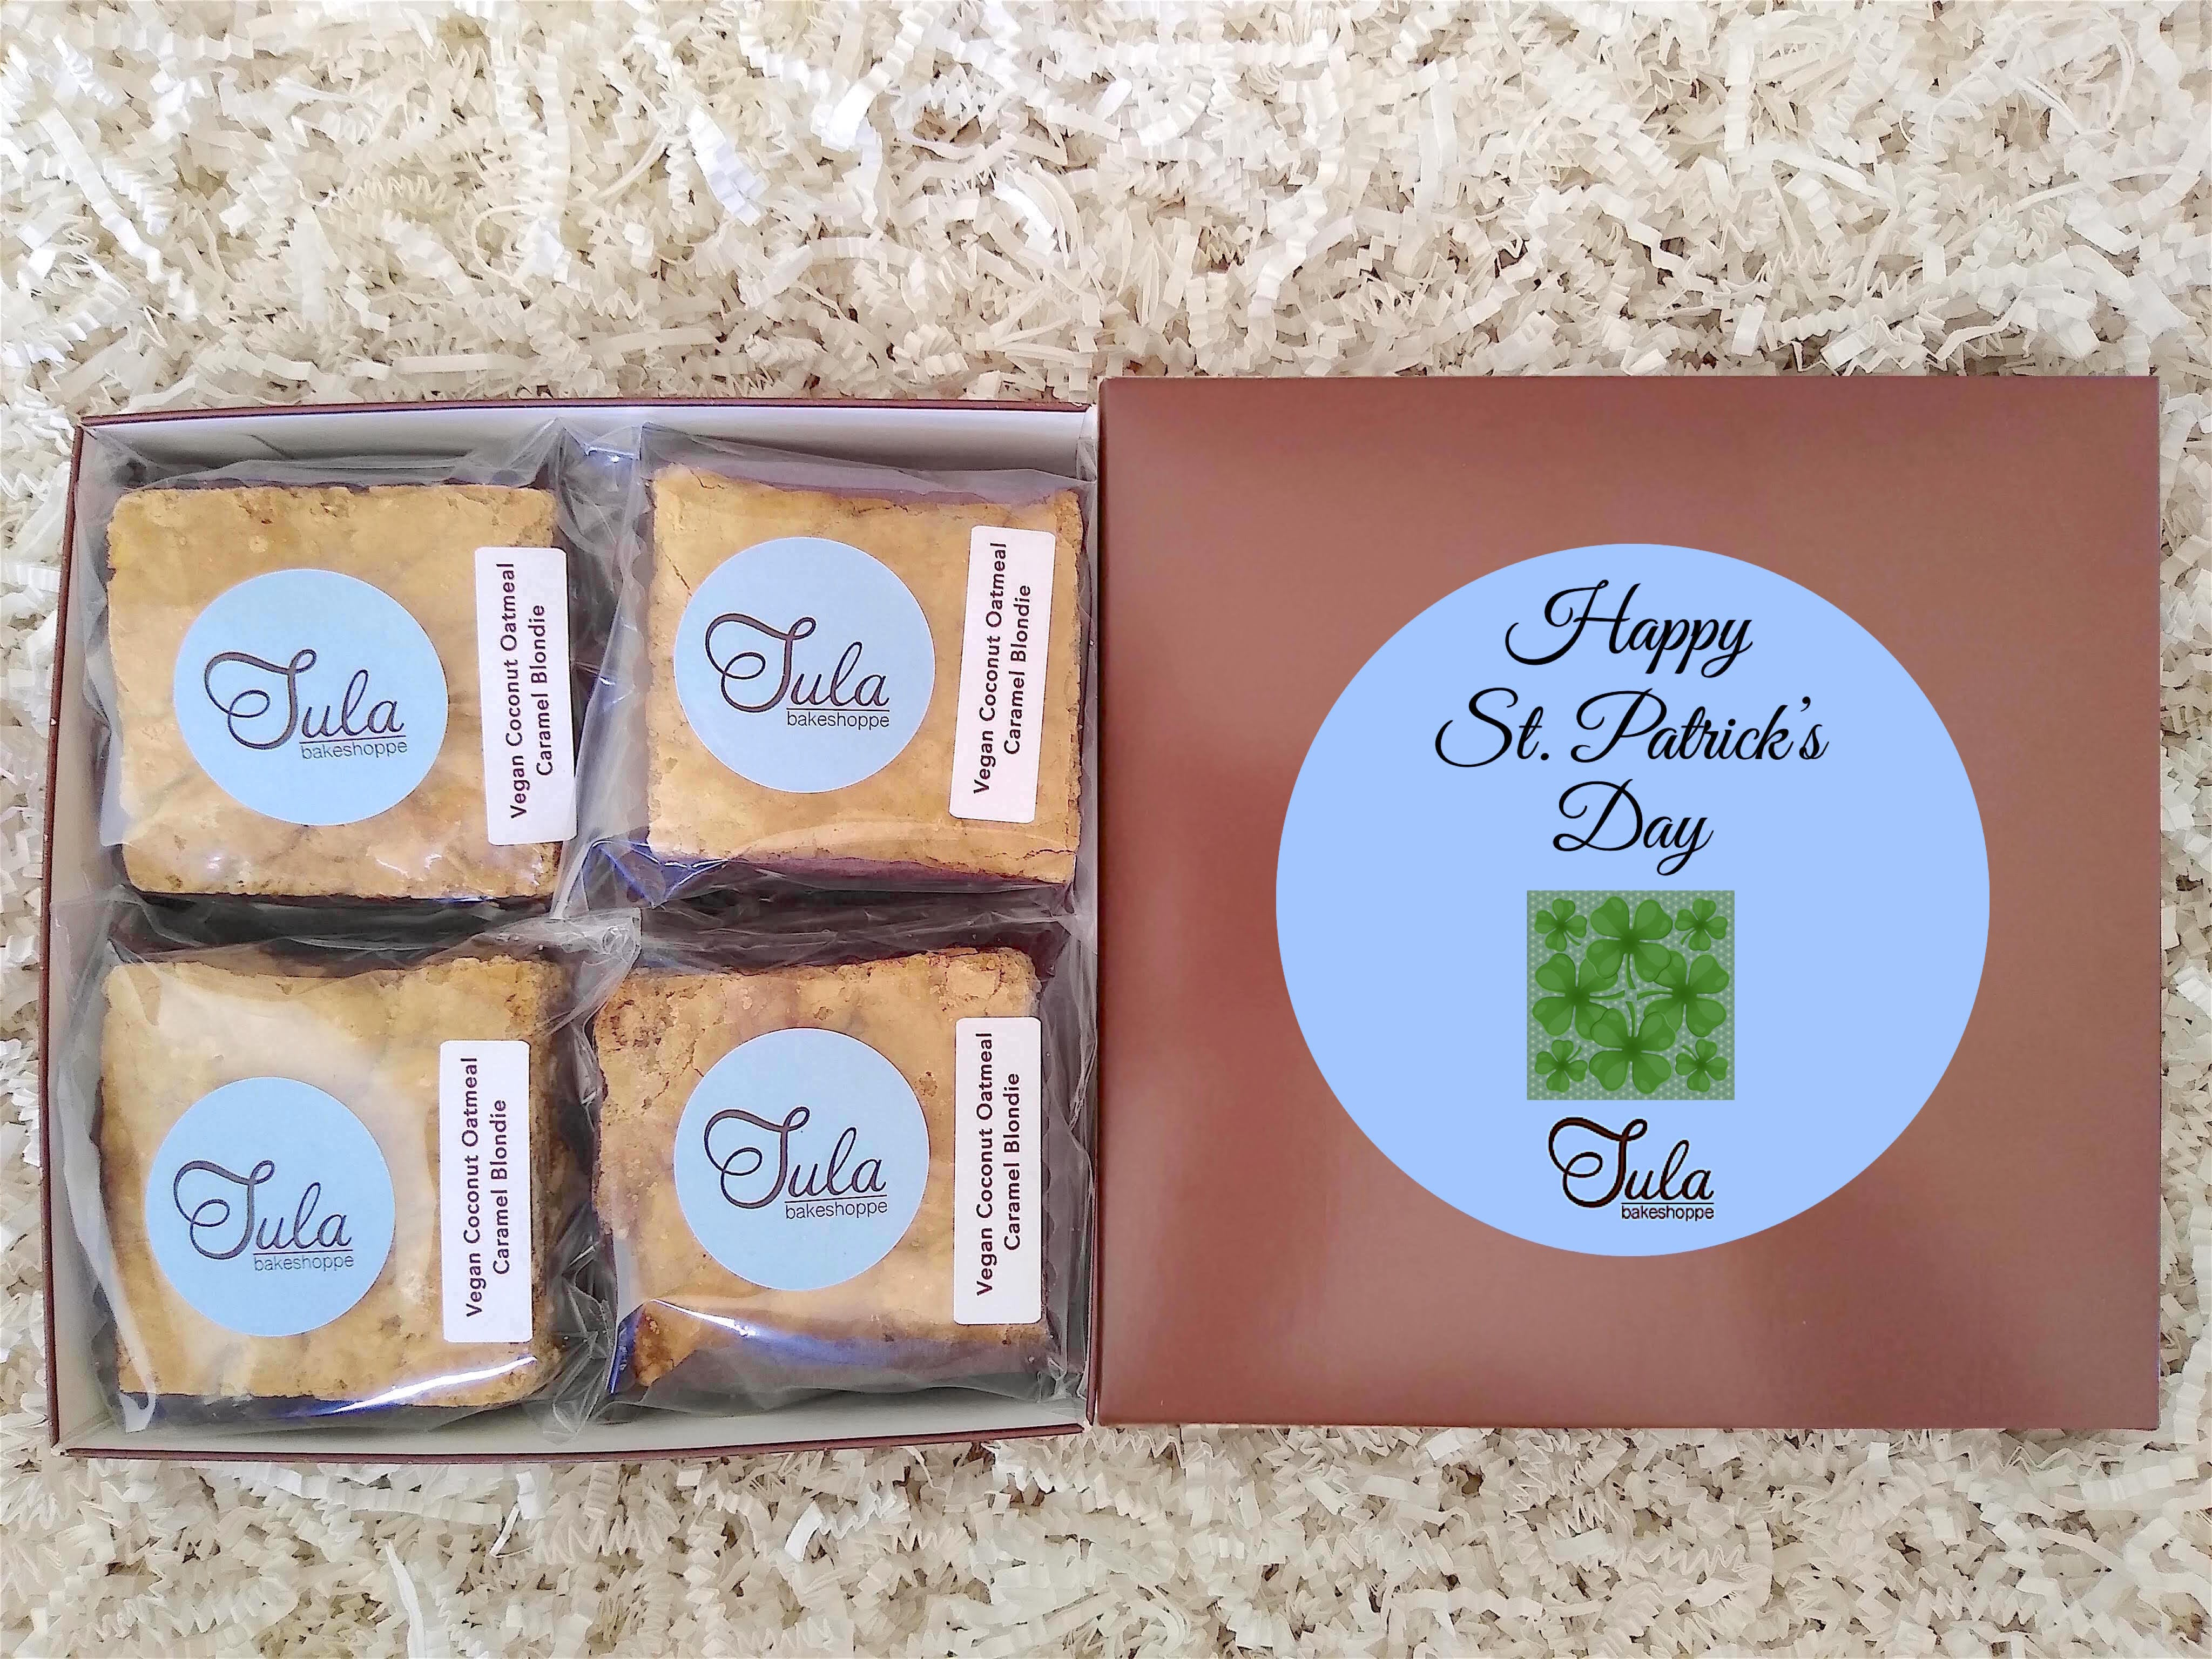 Vegan Saint Patricks Day Irish Clover Coconut Oatmeal Caramel Blondie Gourmet Bar Cookies Gift Box